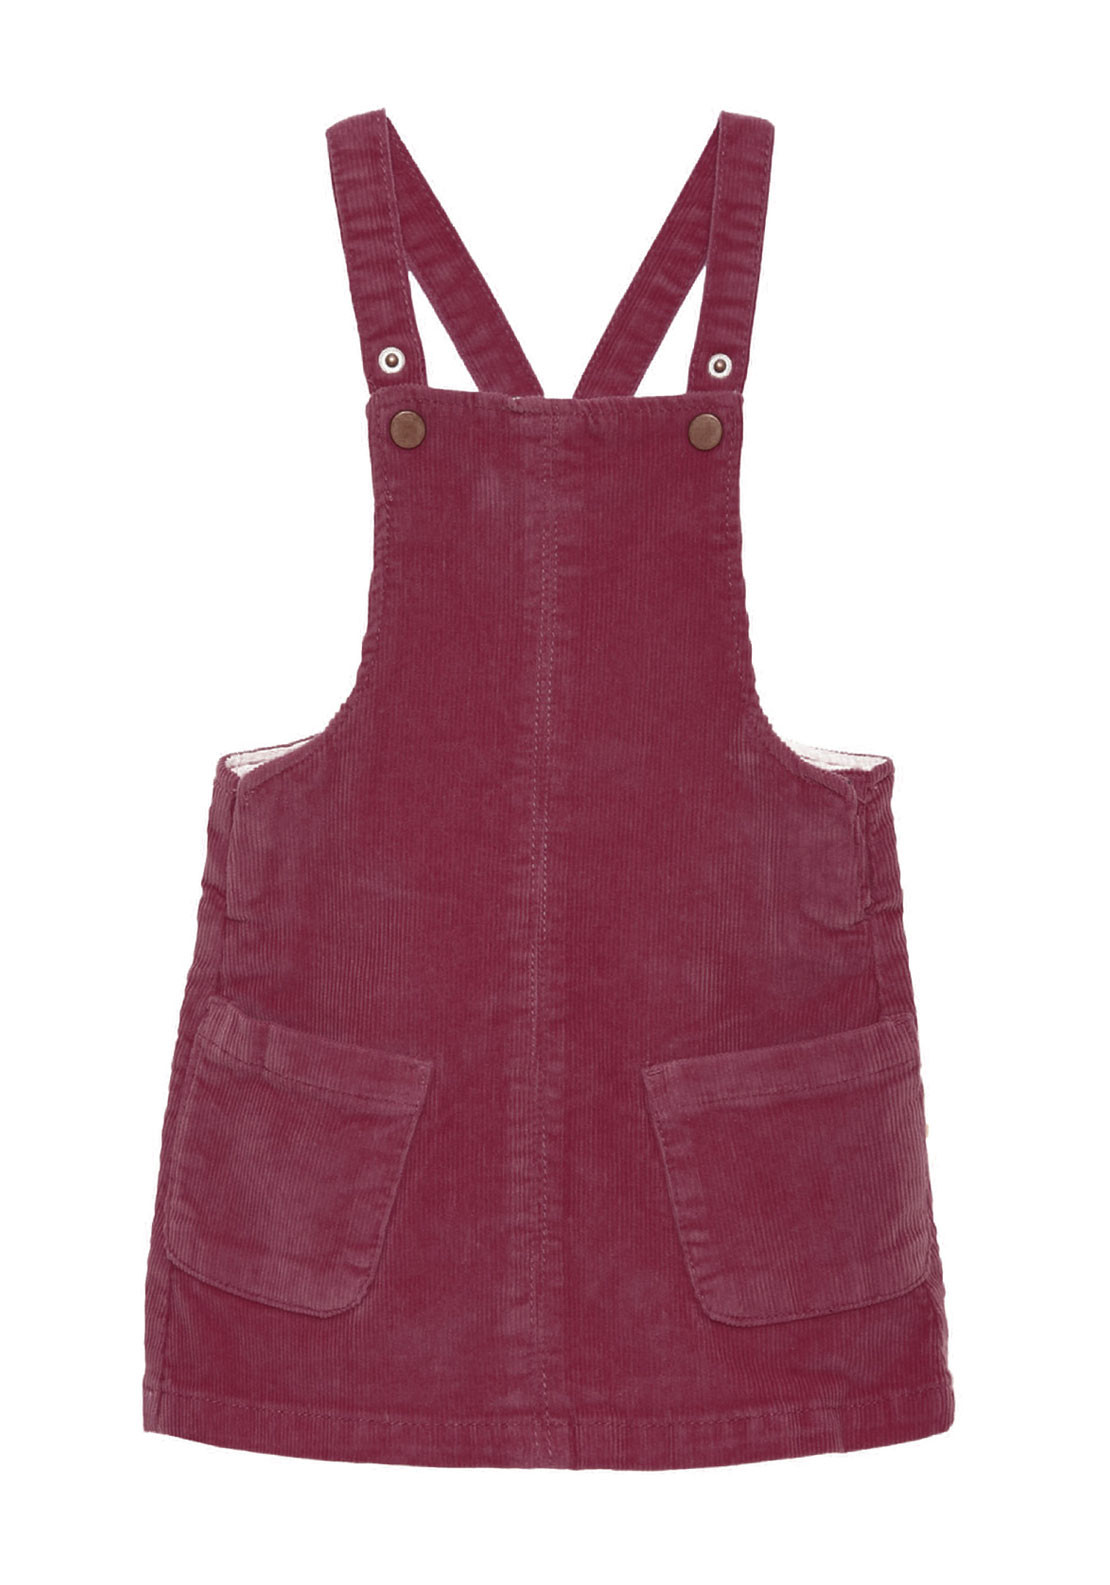 Name It Mini Girls Lone Cord Pinafore Dress, Dark Red